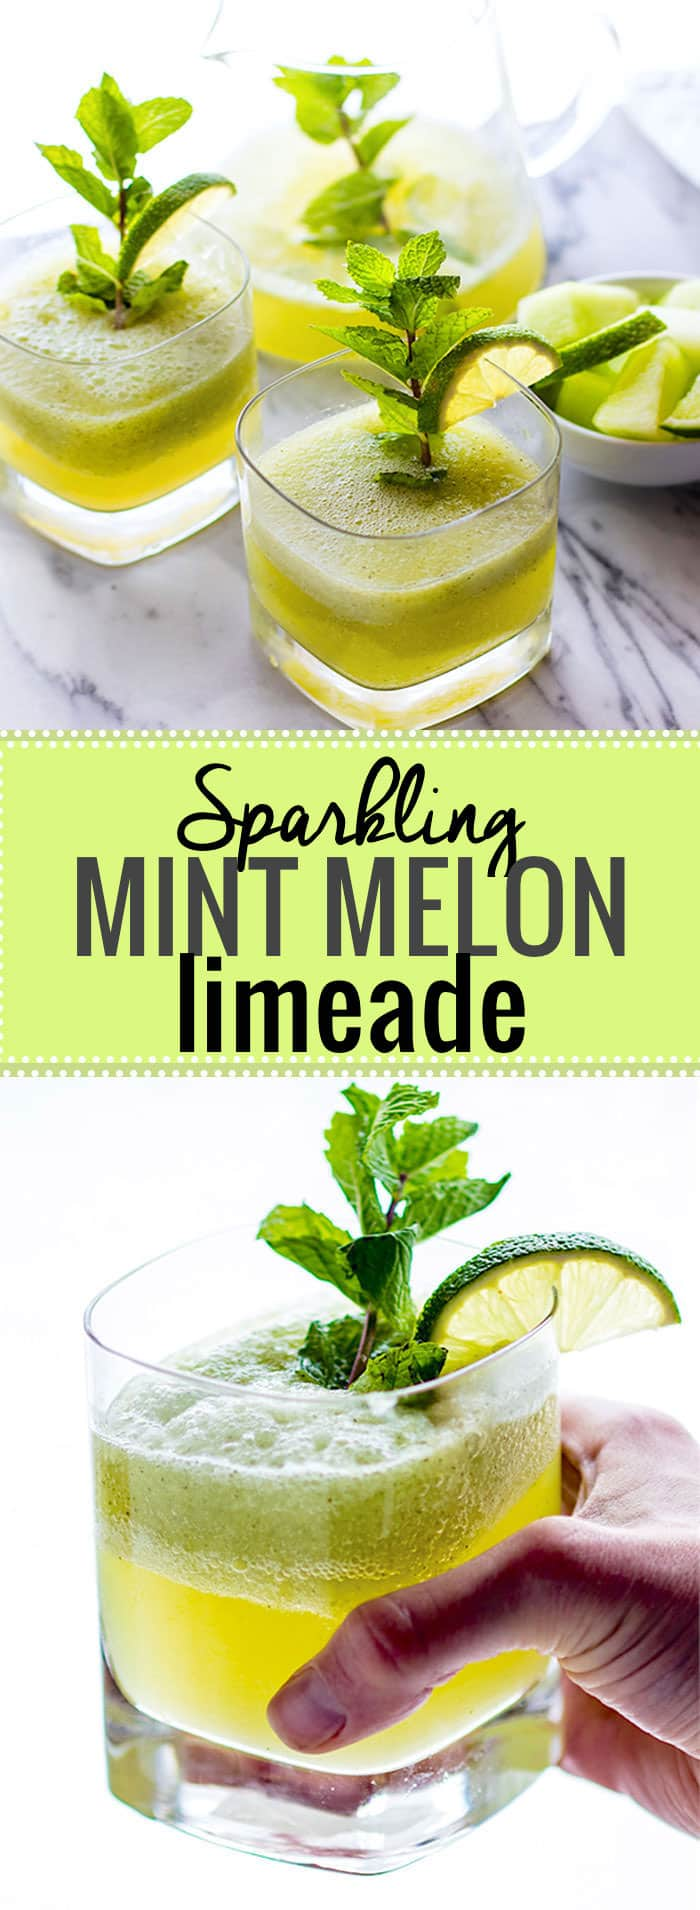 Sparkling Mint Melon Limeade! A Healthy bubbly limeade recipe that will keep you cool and collected all summer! Quick to make, made with natural nourishing ingredients, and delicious to sip on anytime of day. @cottercrunch